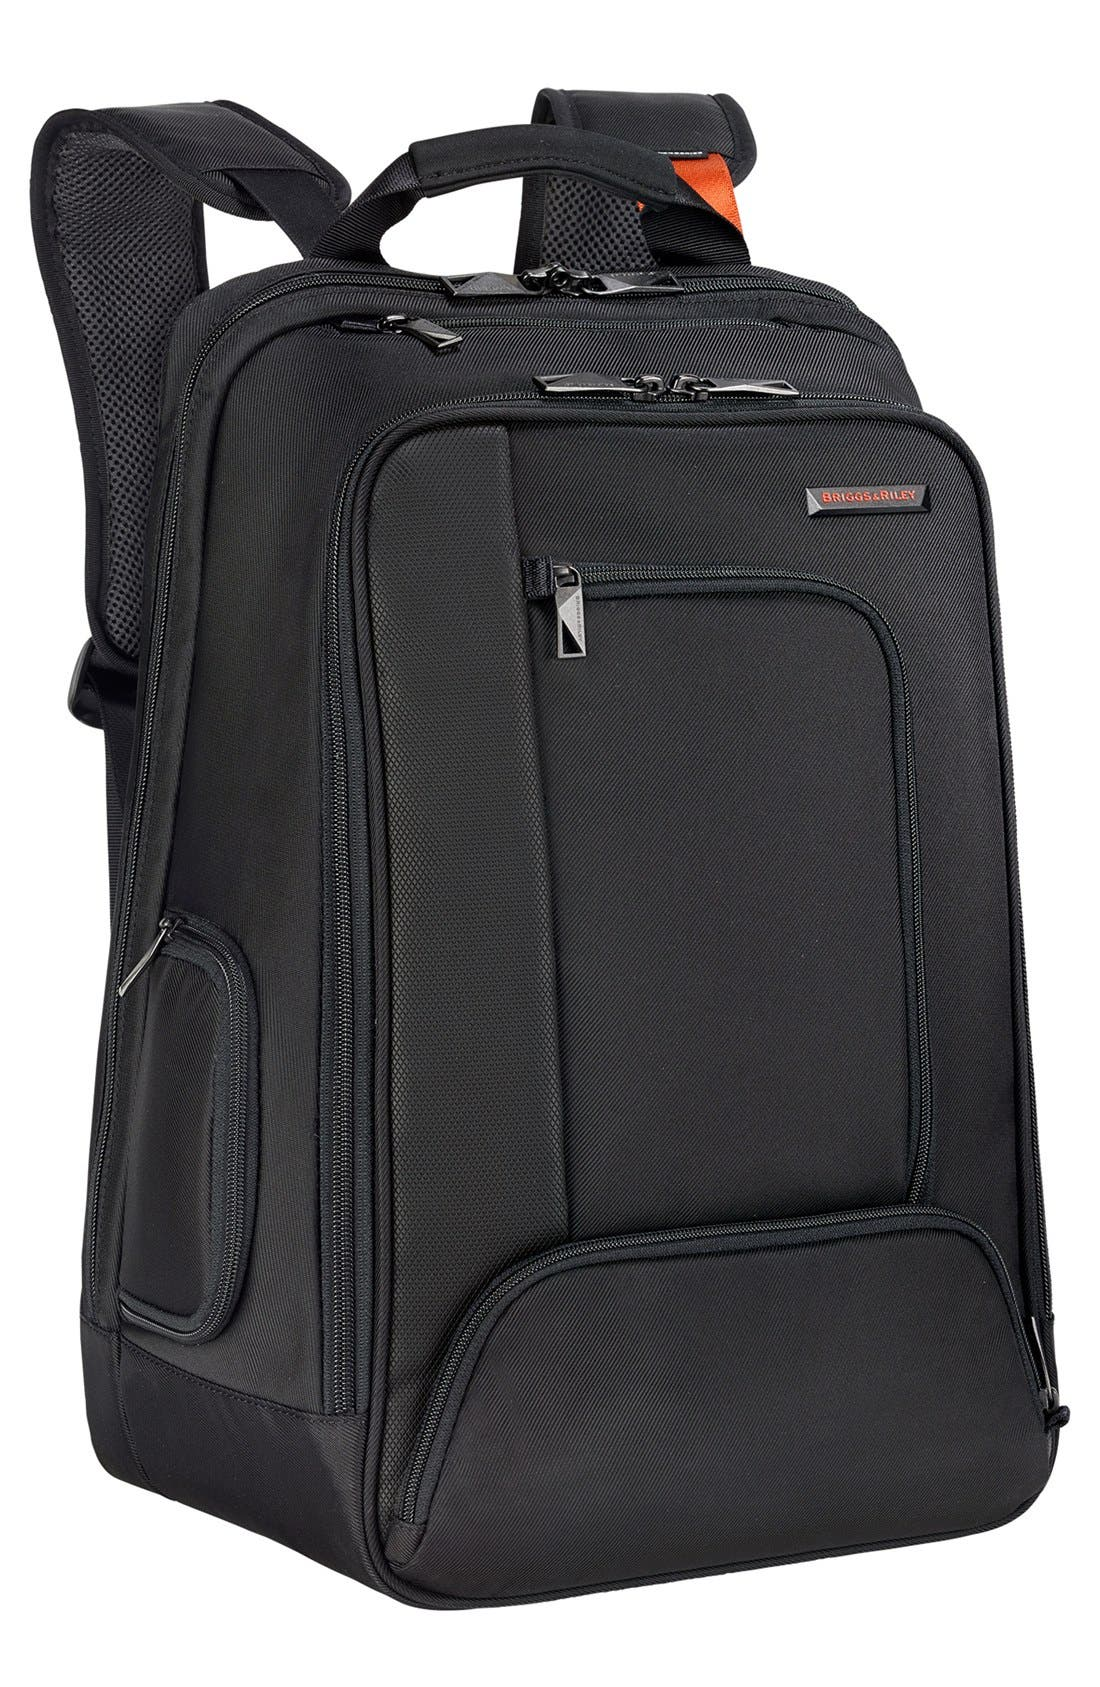 BRIGGS & RILEY, 'Verb - Accelerate' Backpack, Main thumbnail 1, color, BLACK